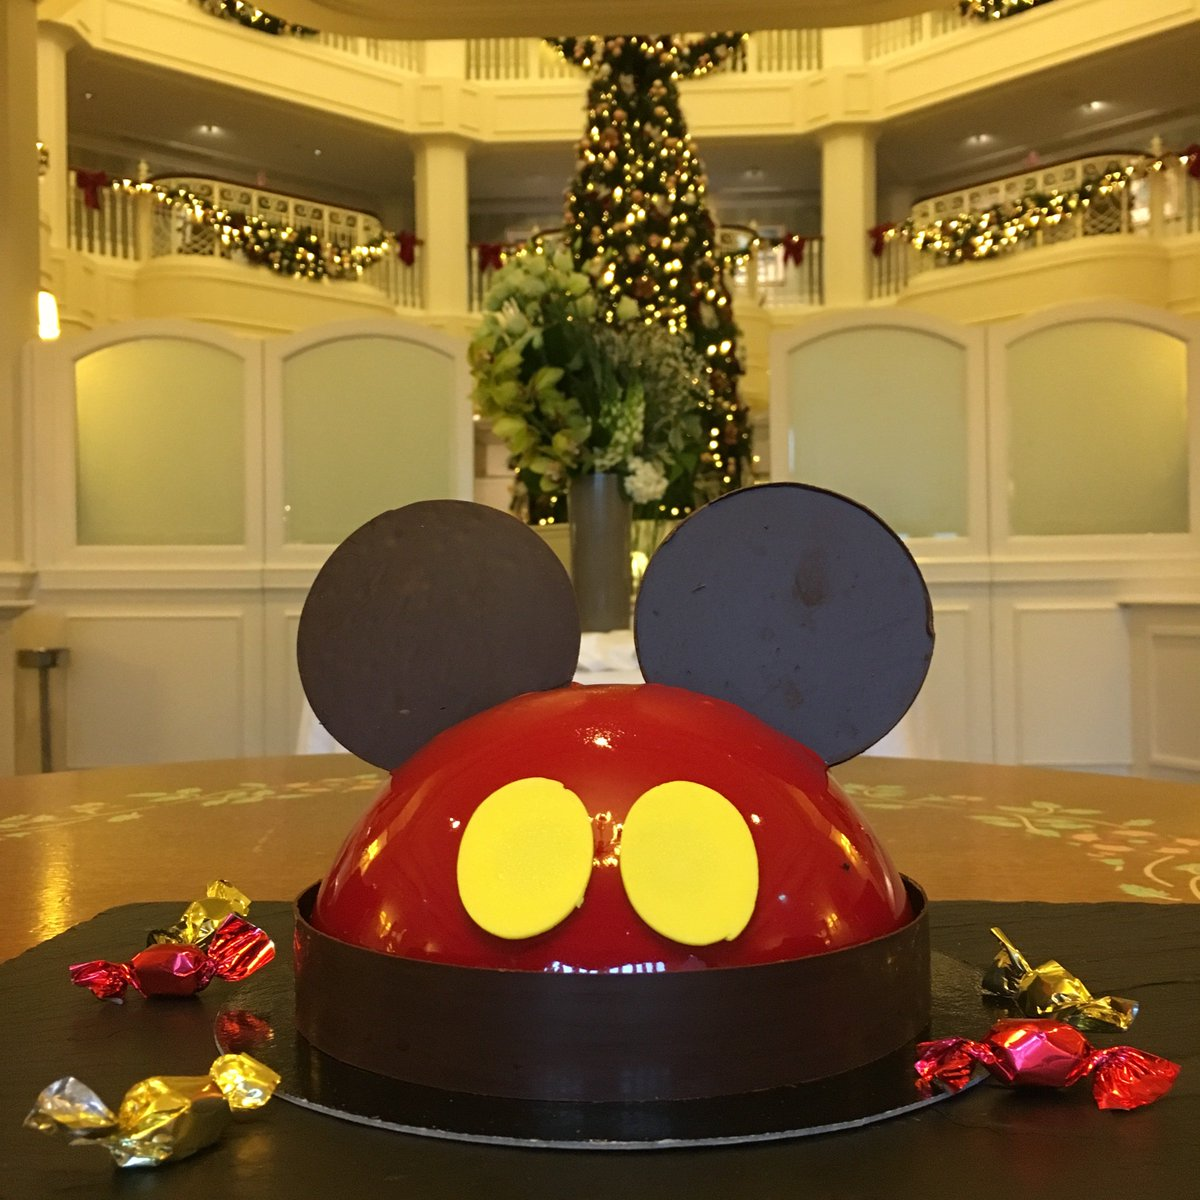 Dlp Today Dlptoday Twitter